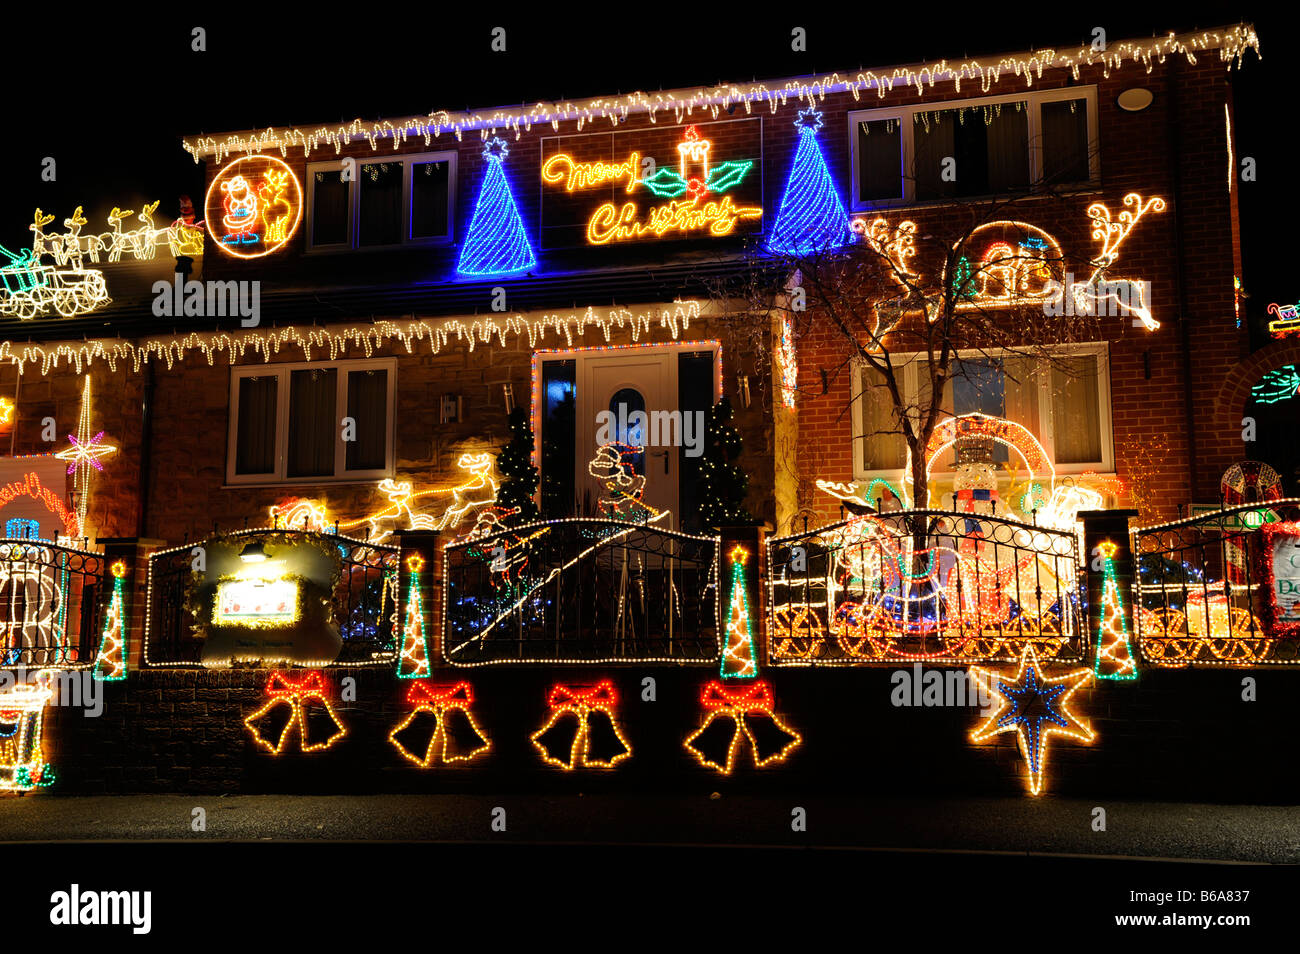 christmas lights on a house in barnsley uk stock photo 21124187 alamy